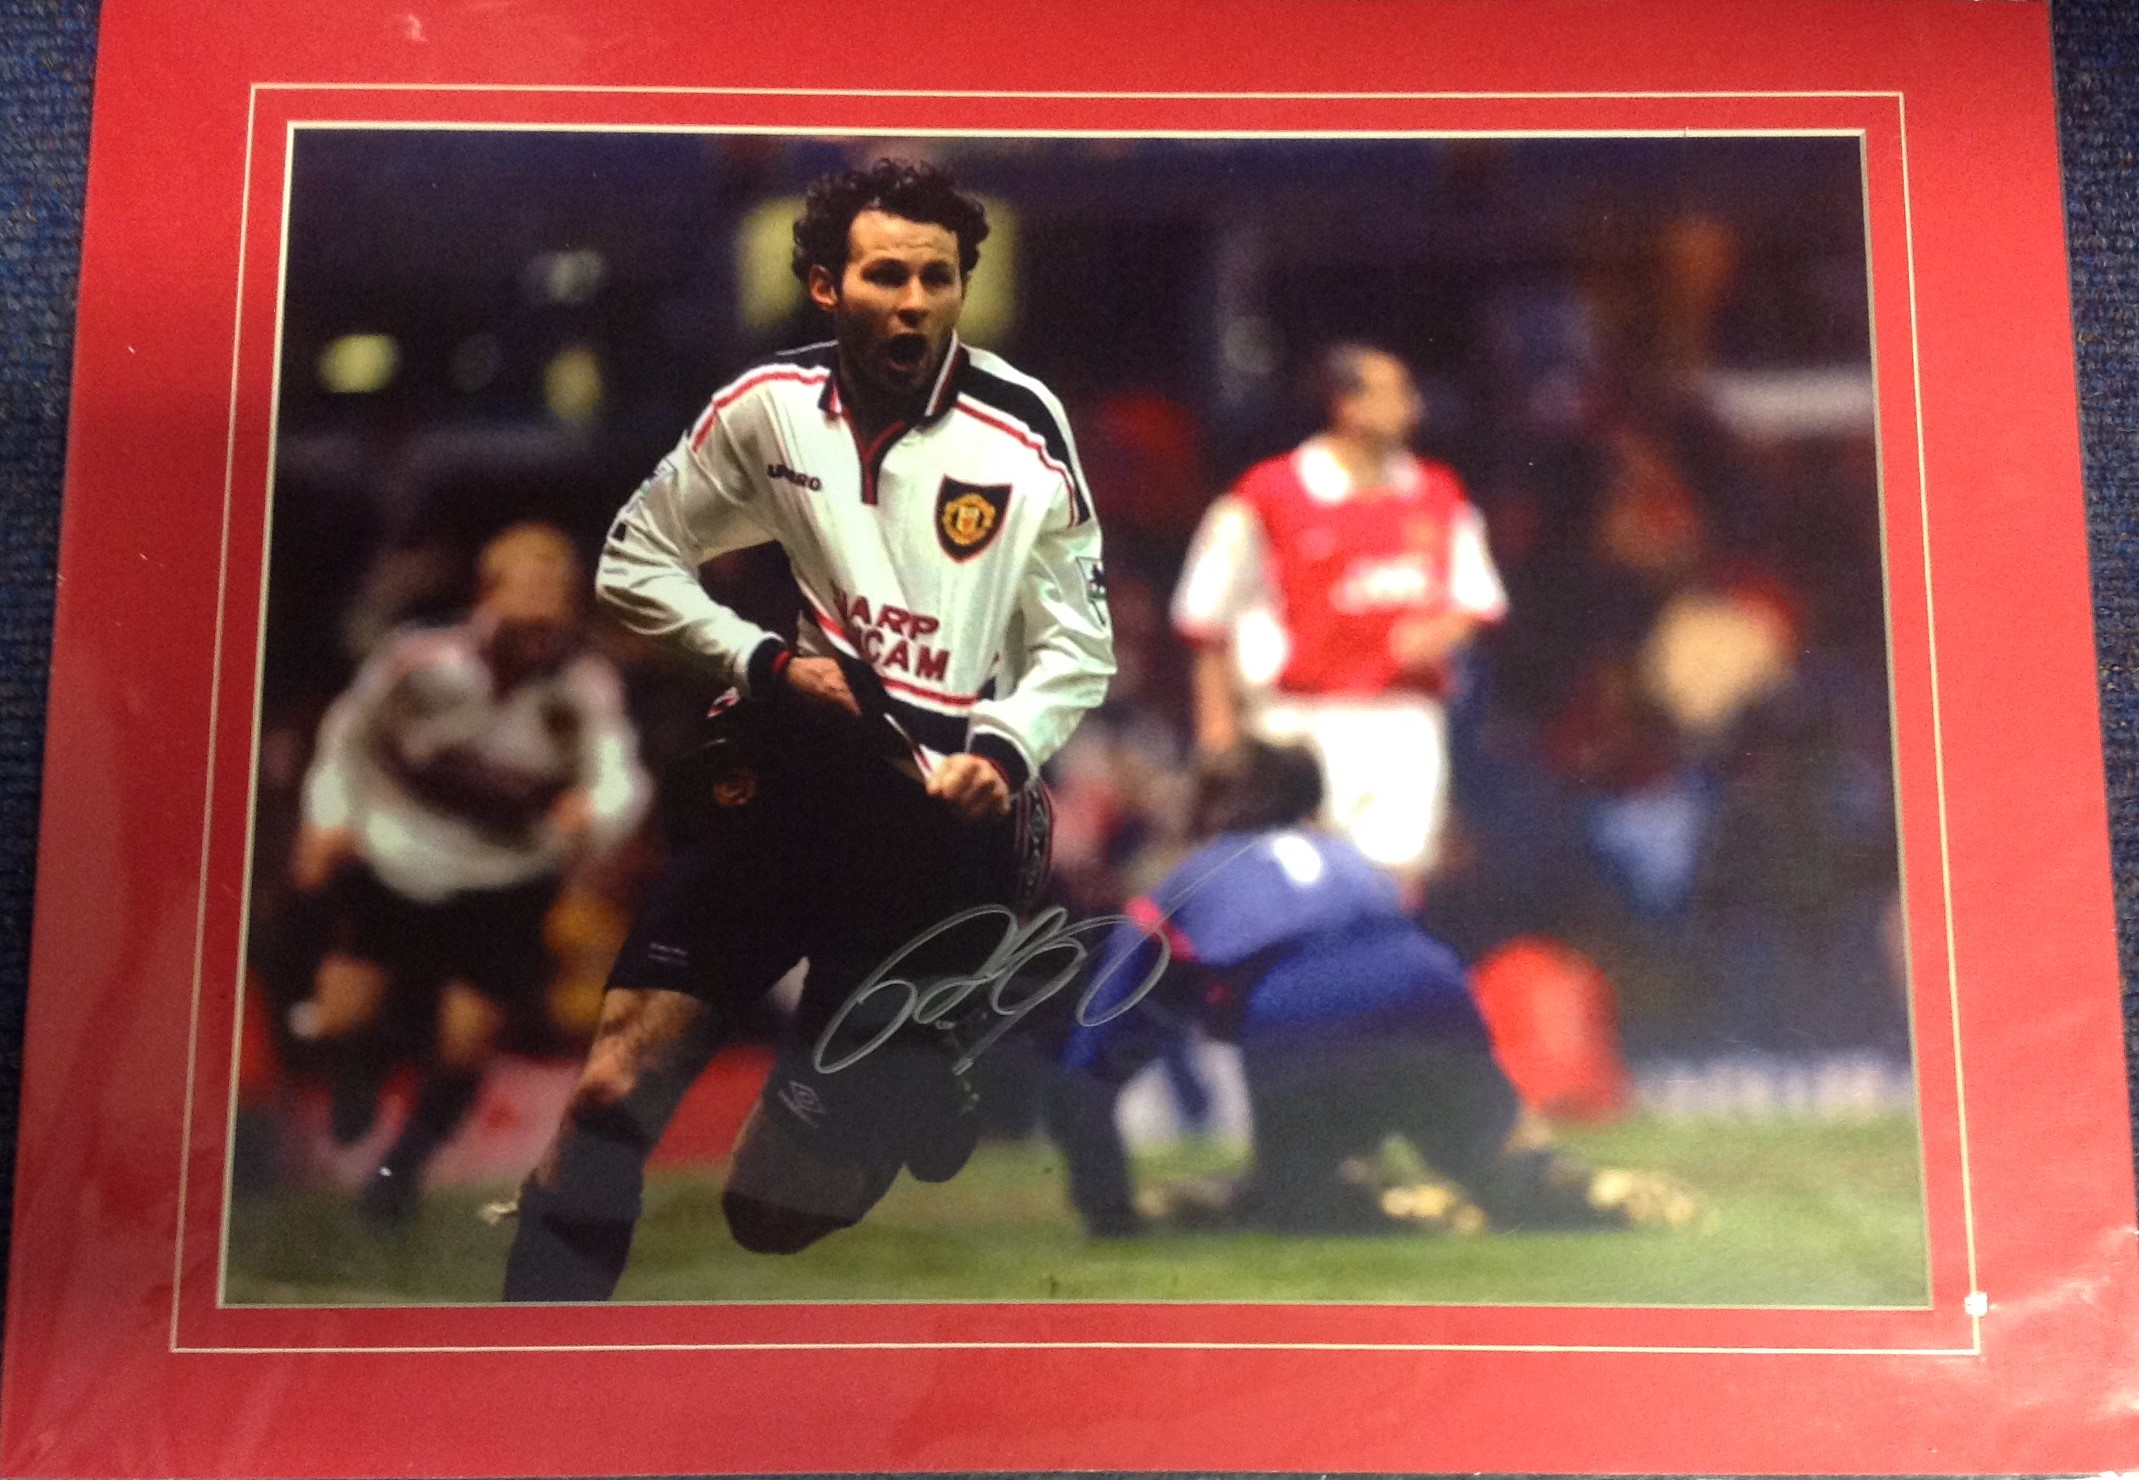 Lot 50 - Football Ryan Giggs signed 15x20 mounted colour photo pictured celebrating after scoring his